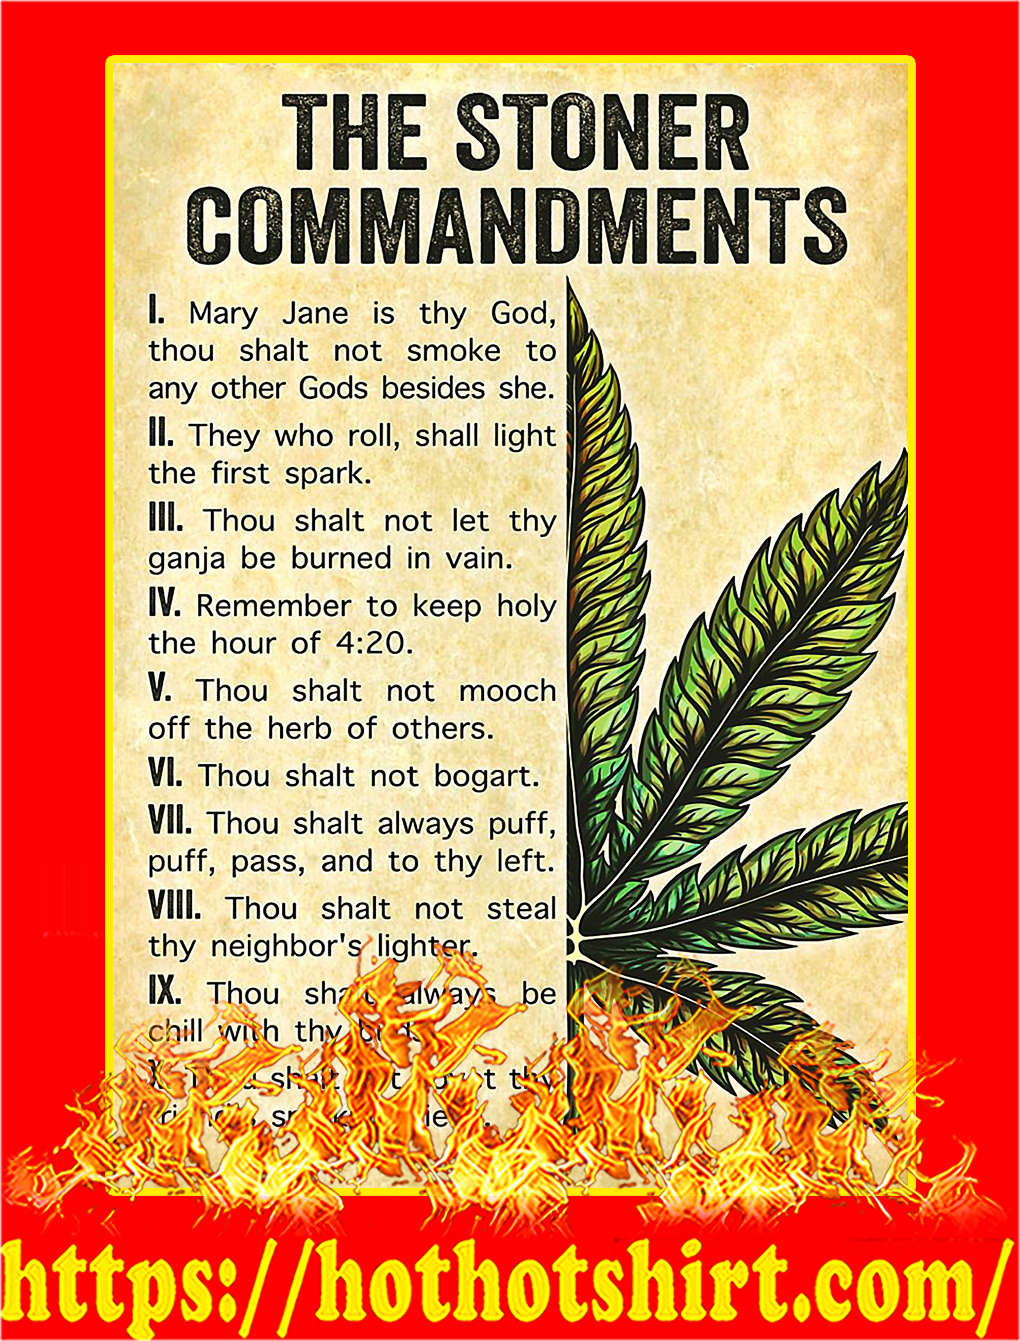 Weed cannabis the stoner commandments poster - A3